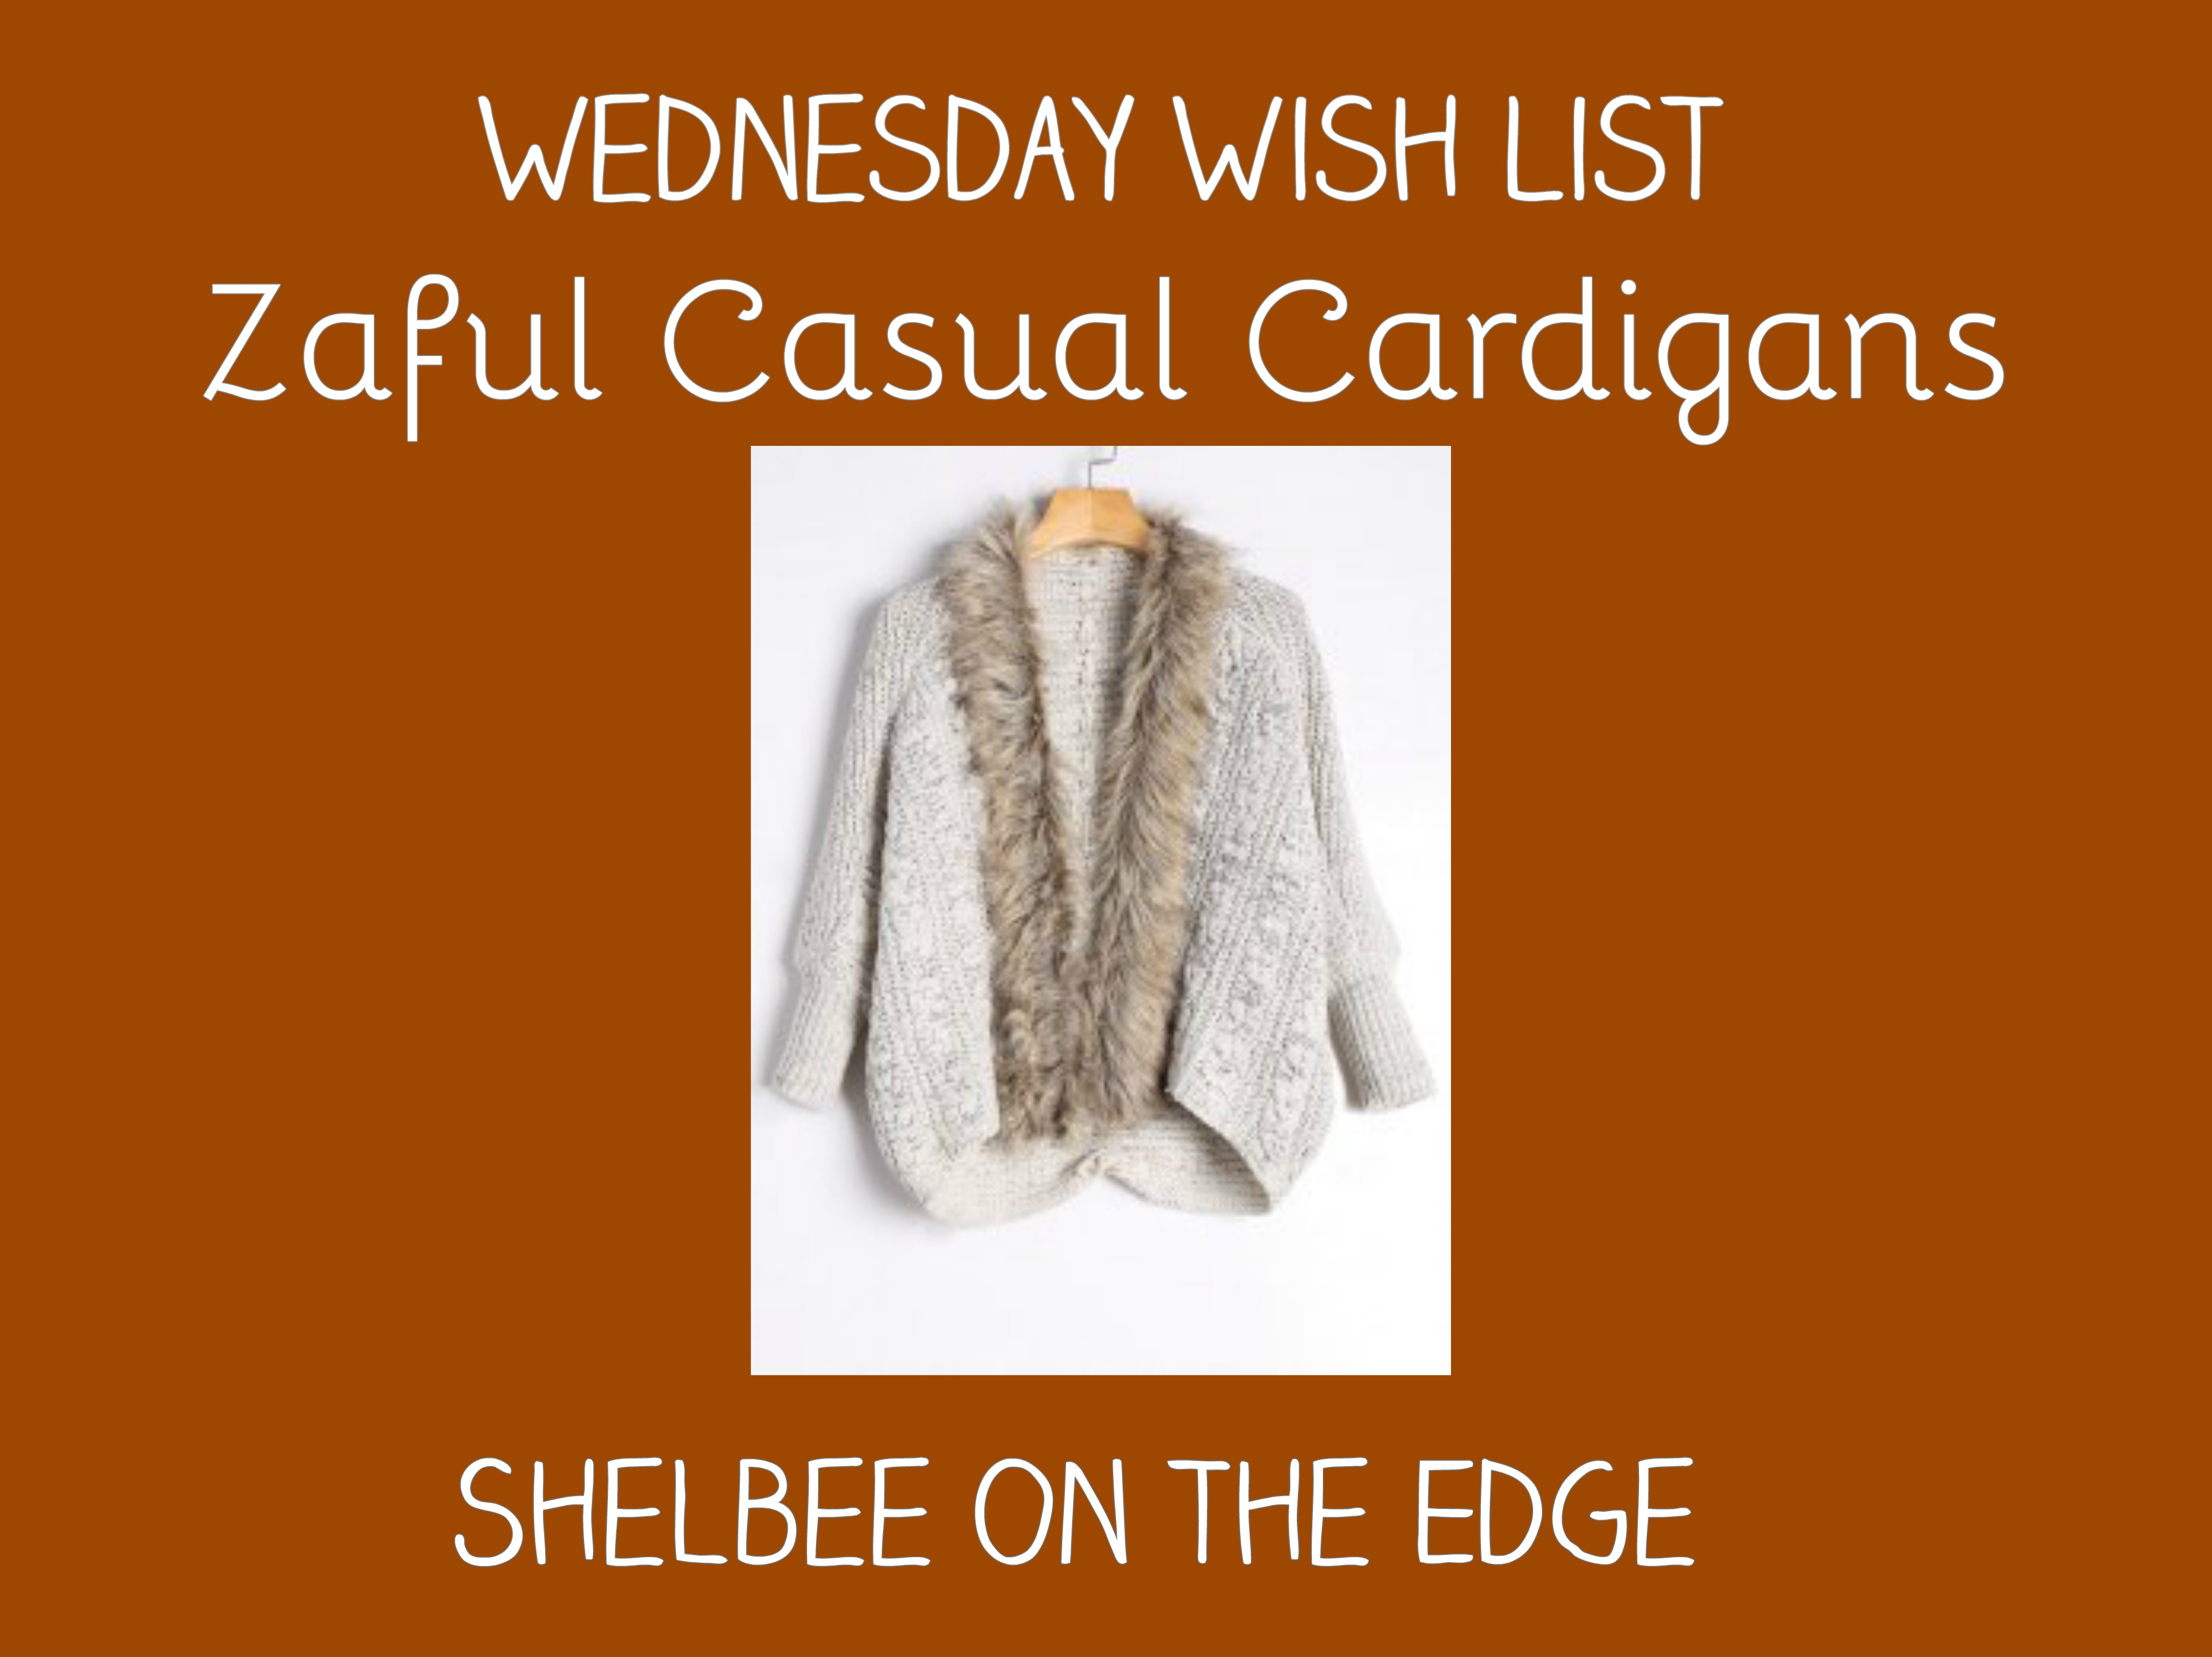 Wednesday Wish List: Casual Cardigans from Zaful